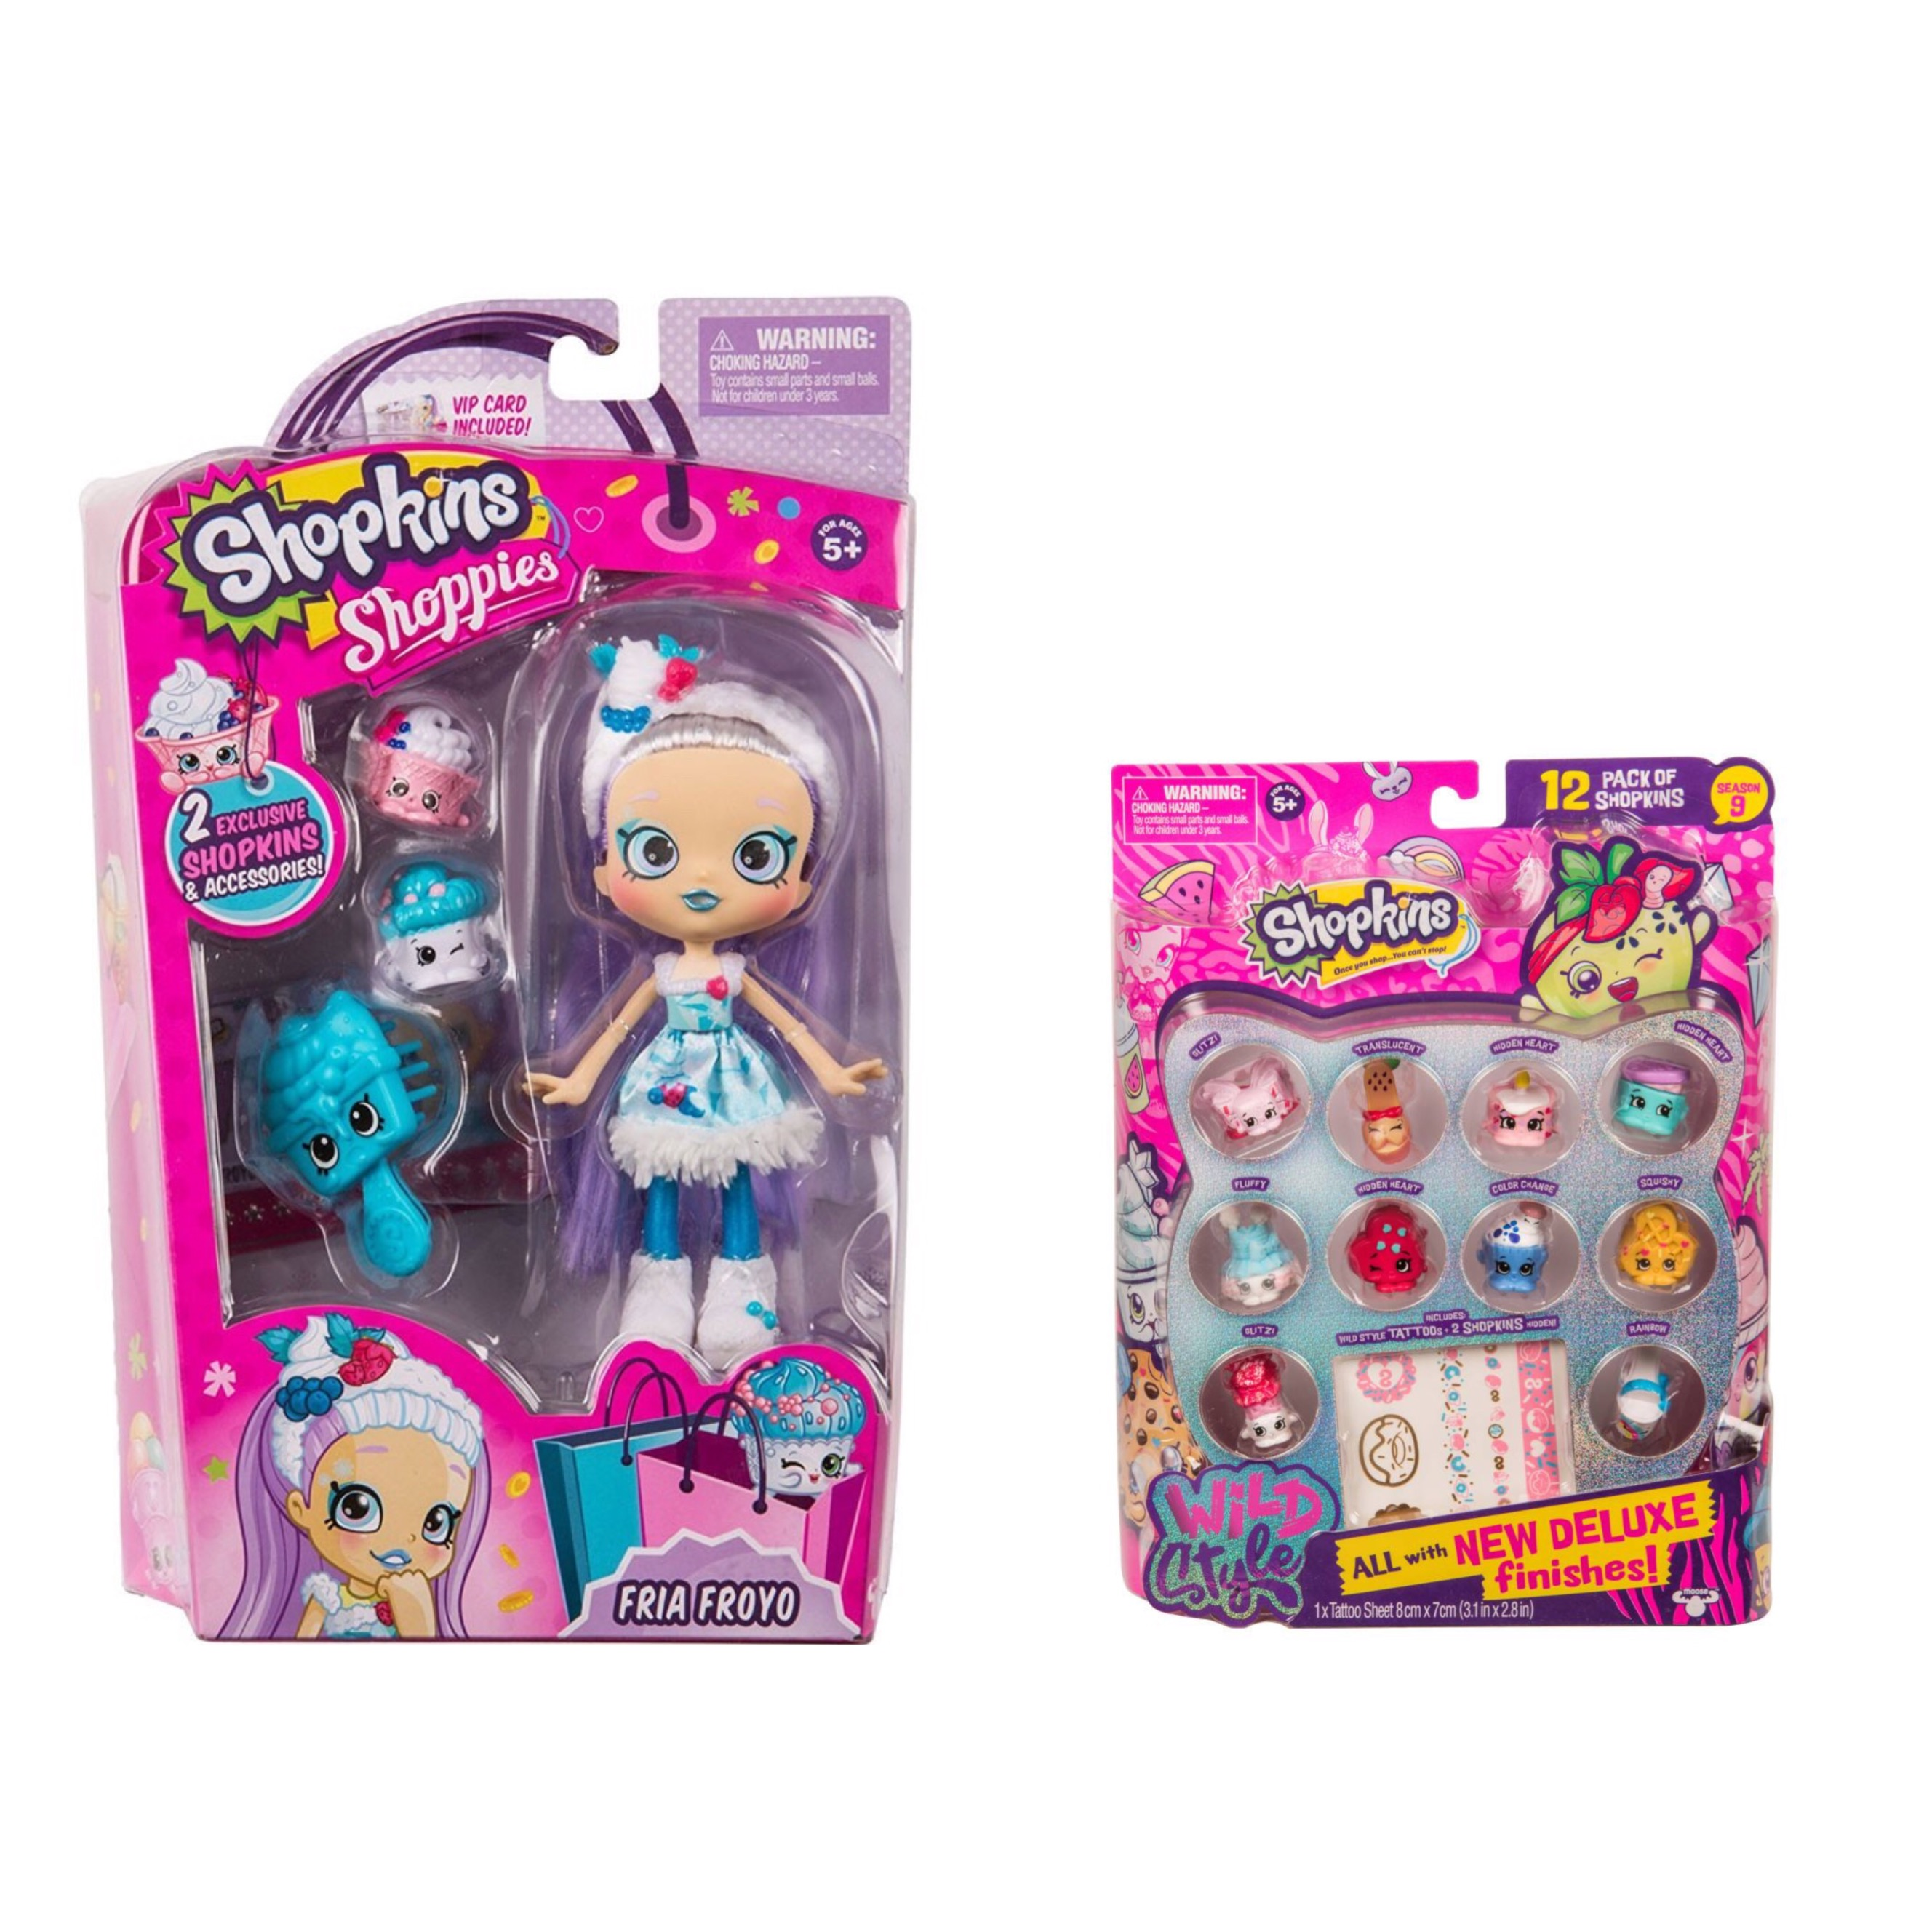 Shopkins Wild Style Season 9 Wild Style Fria Froyo Shoppie Doll and 12 Pack (random styles) Bundle